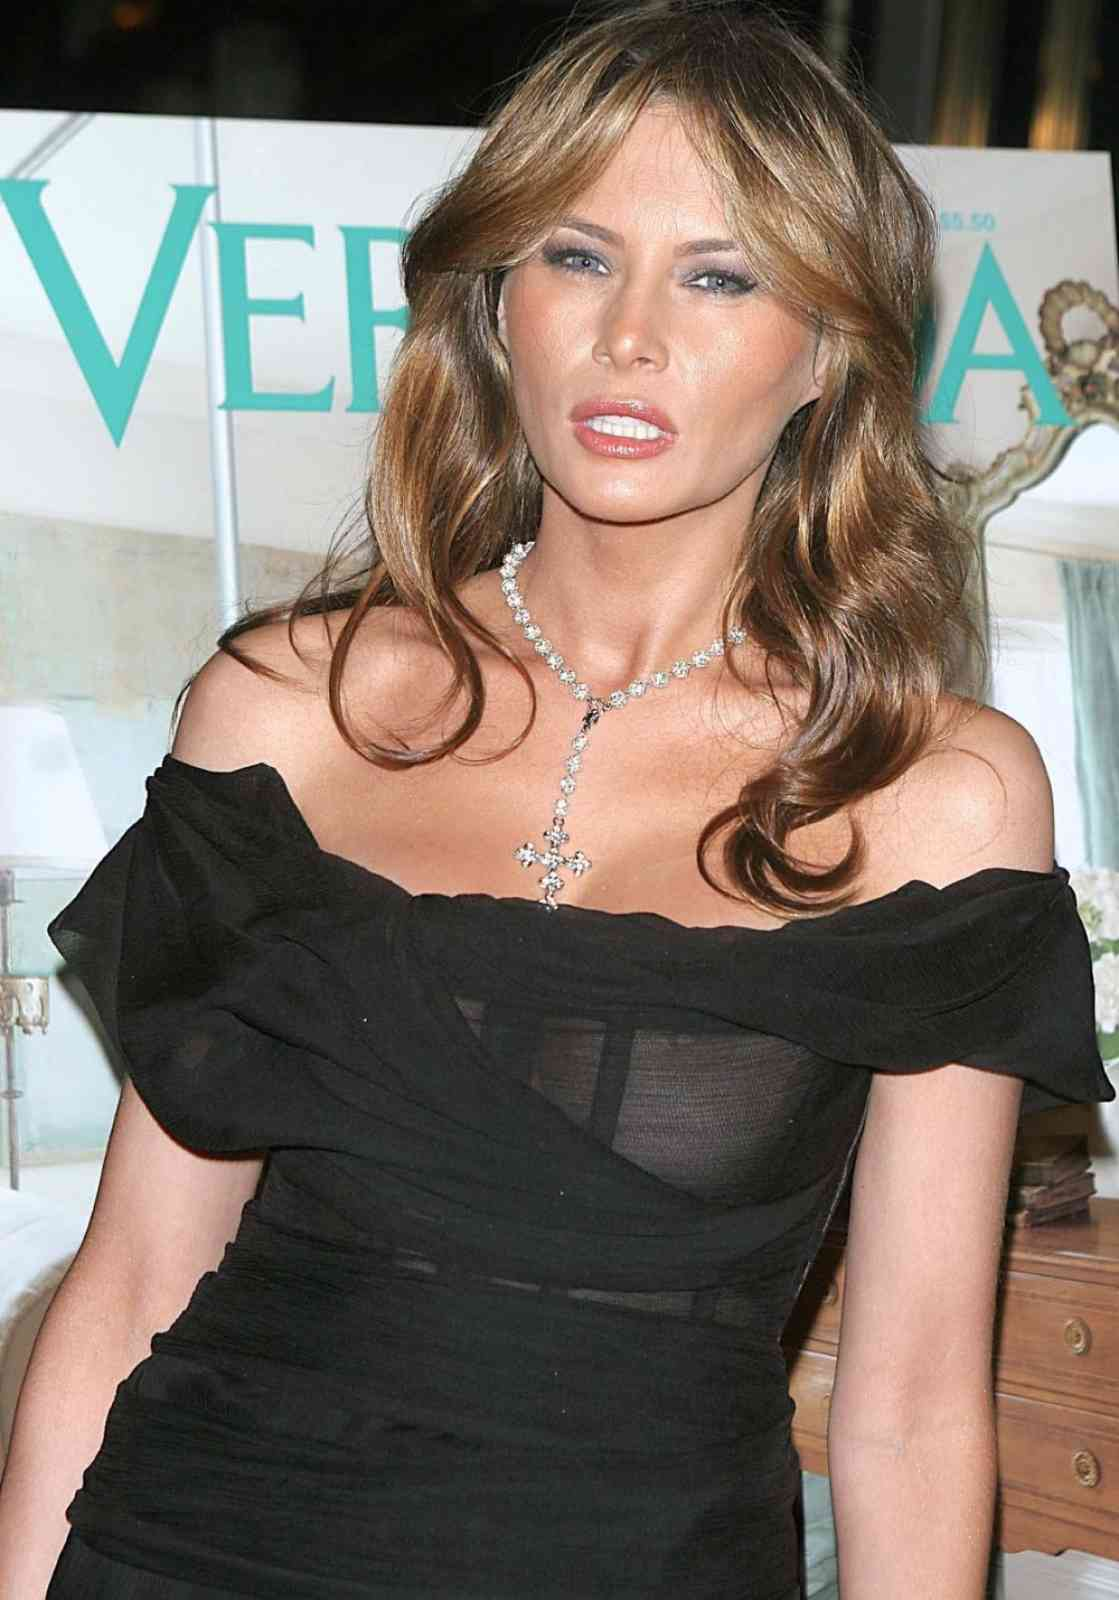 Melania Trump tits and nipple